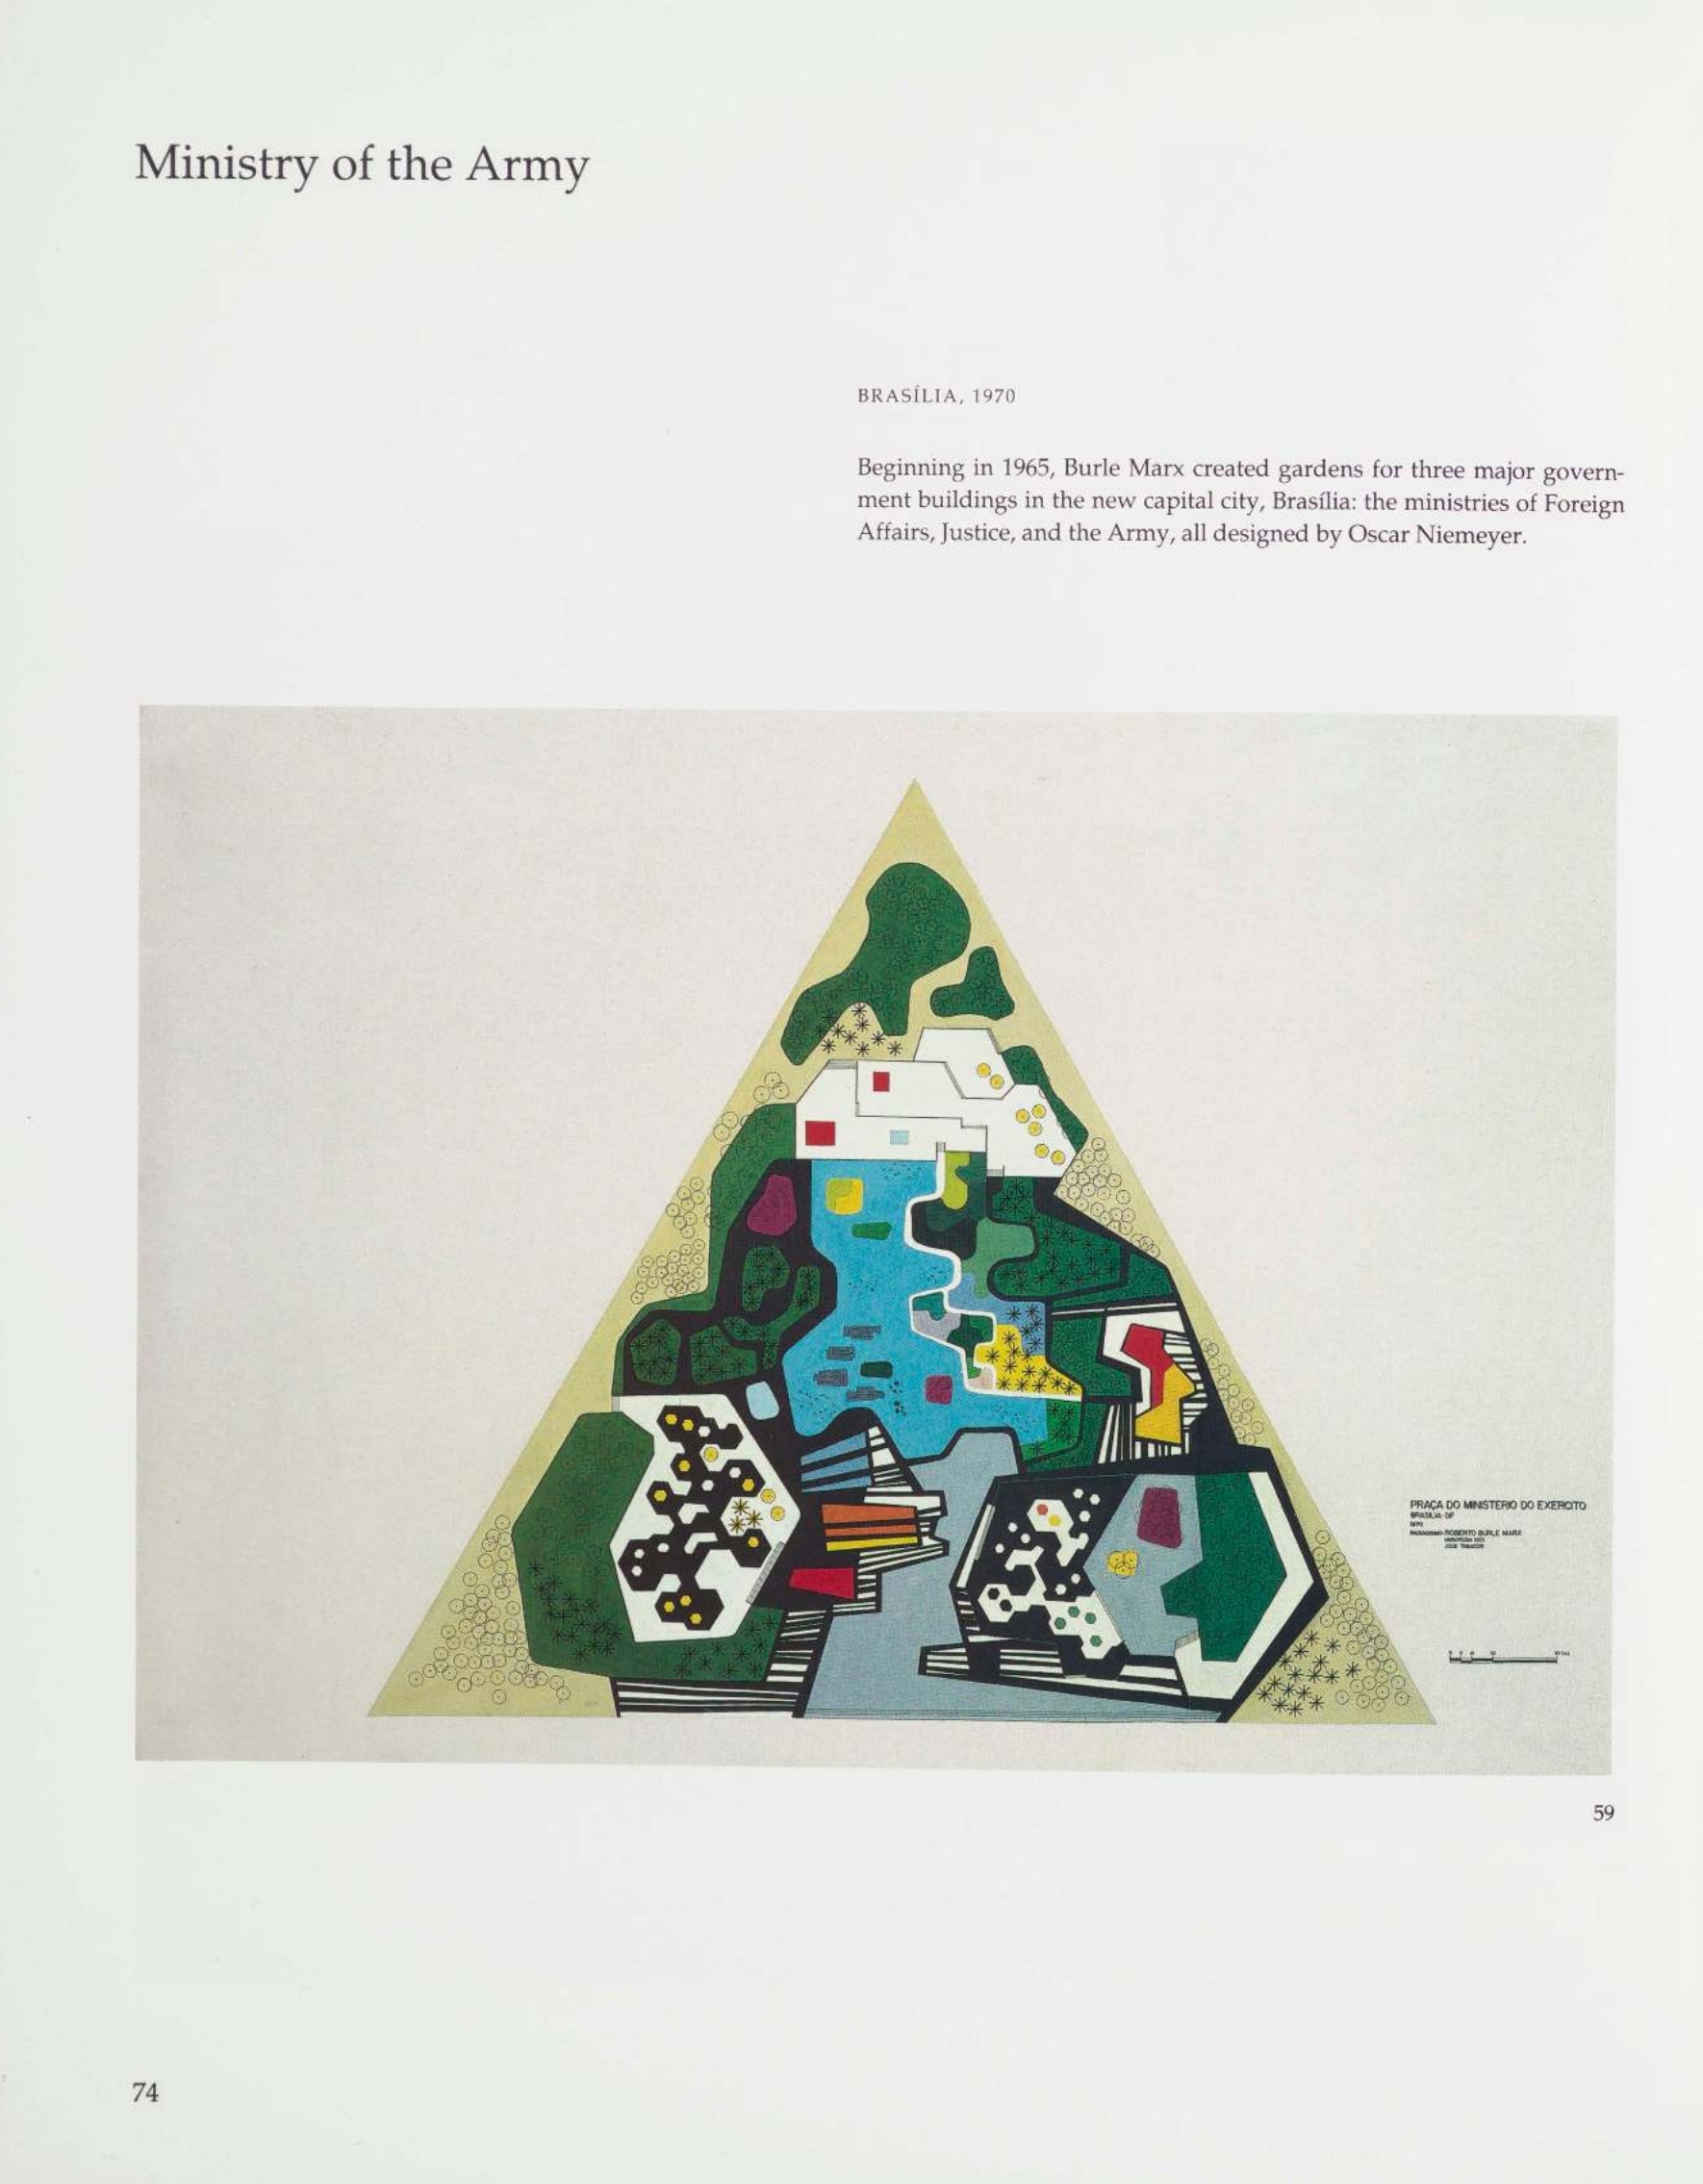 Roberto Burle Marx : The Unnatural Art of the Garden / by William Howard Adams. — New York : The Museum of Modern Art, 1991